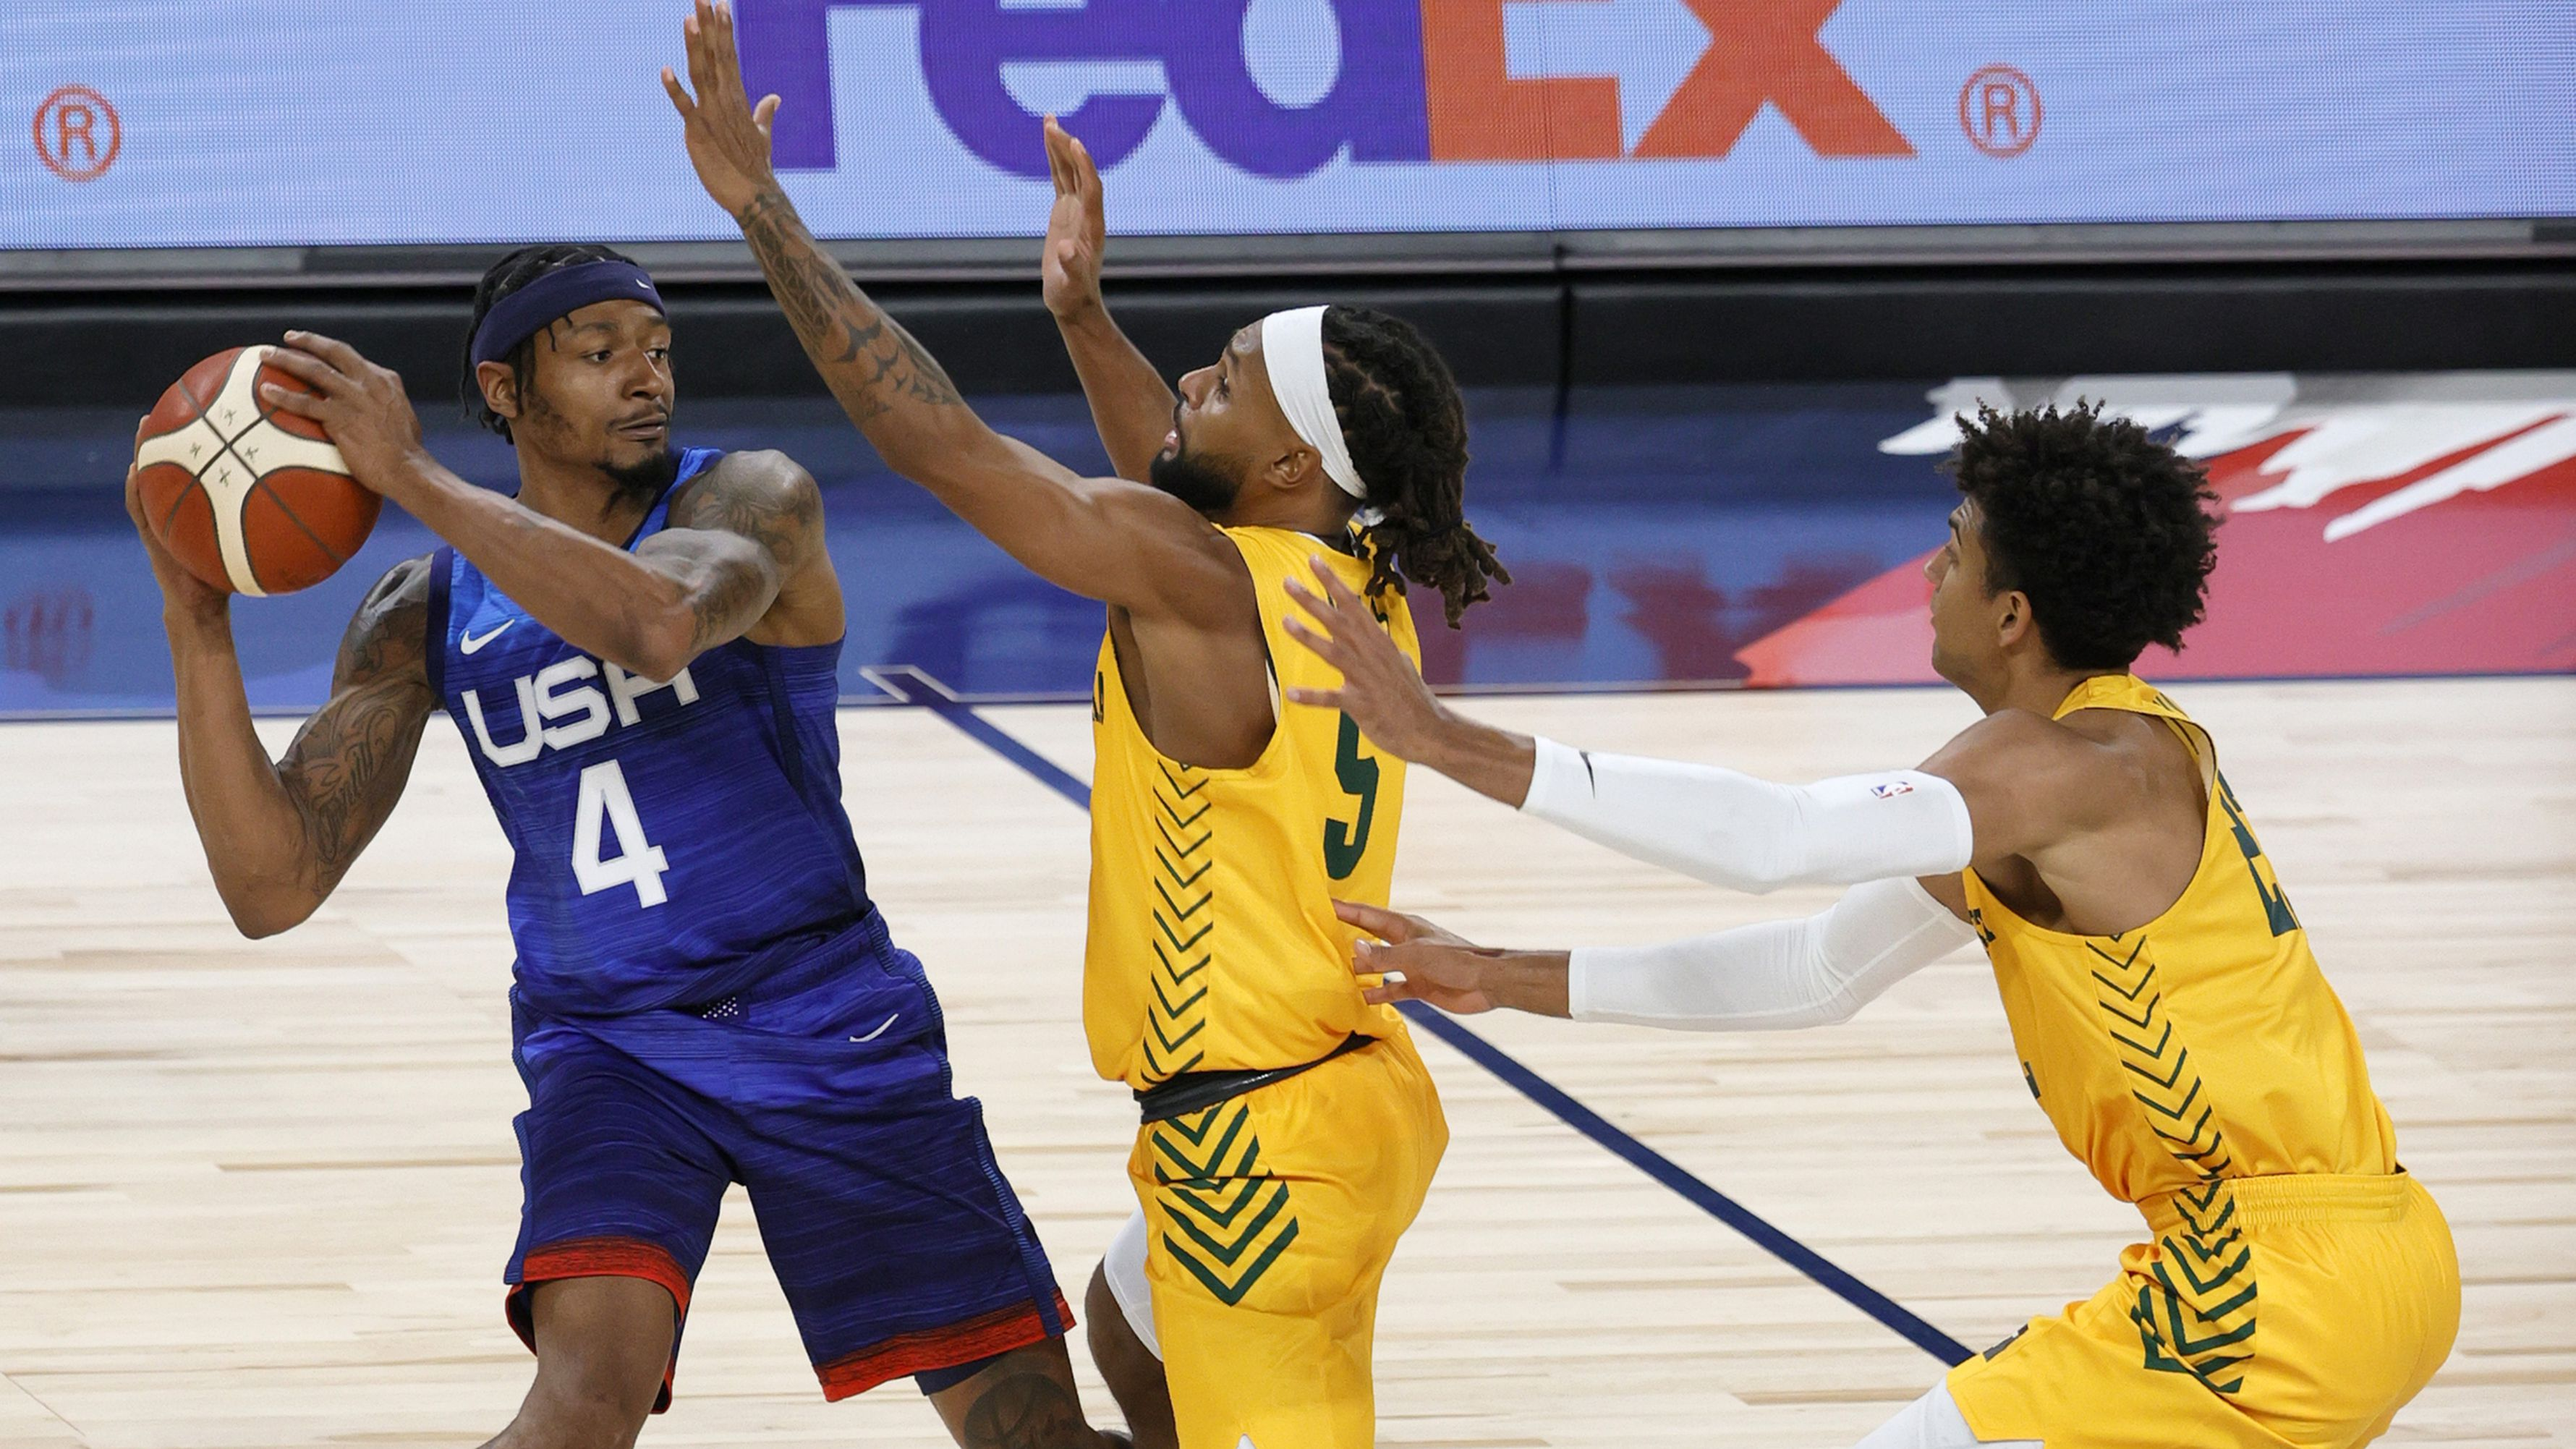 AP source: Team USA star Bradley Beal in protocols, Tokyo Olympics status in doubt